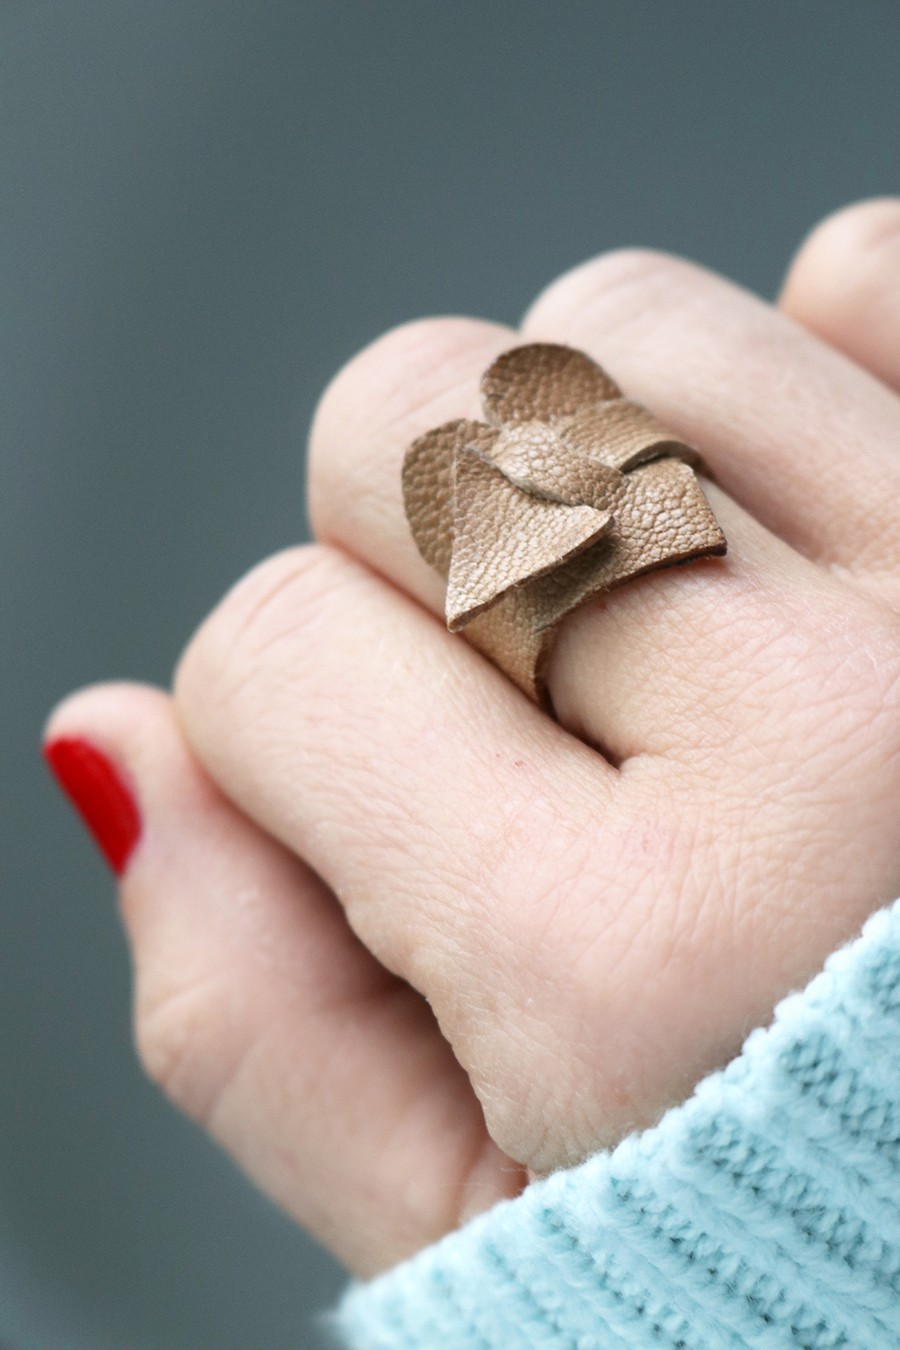 Got leather scraps? Make a cute heart ring!